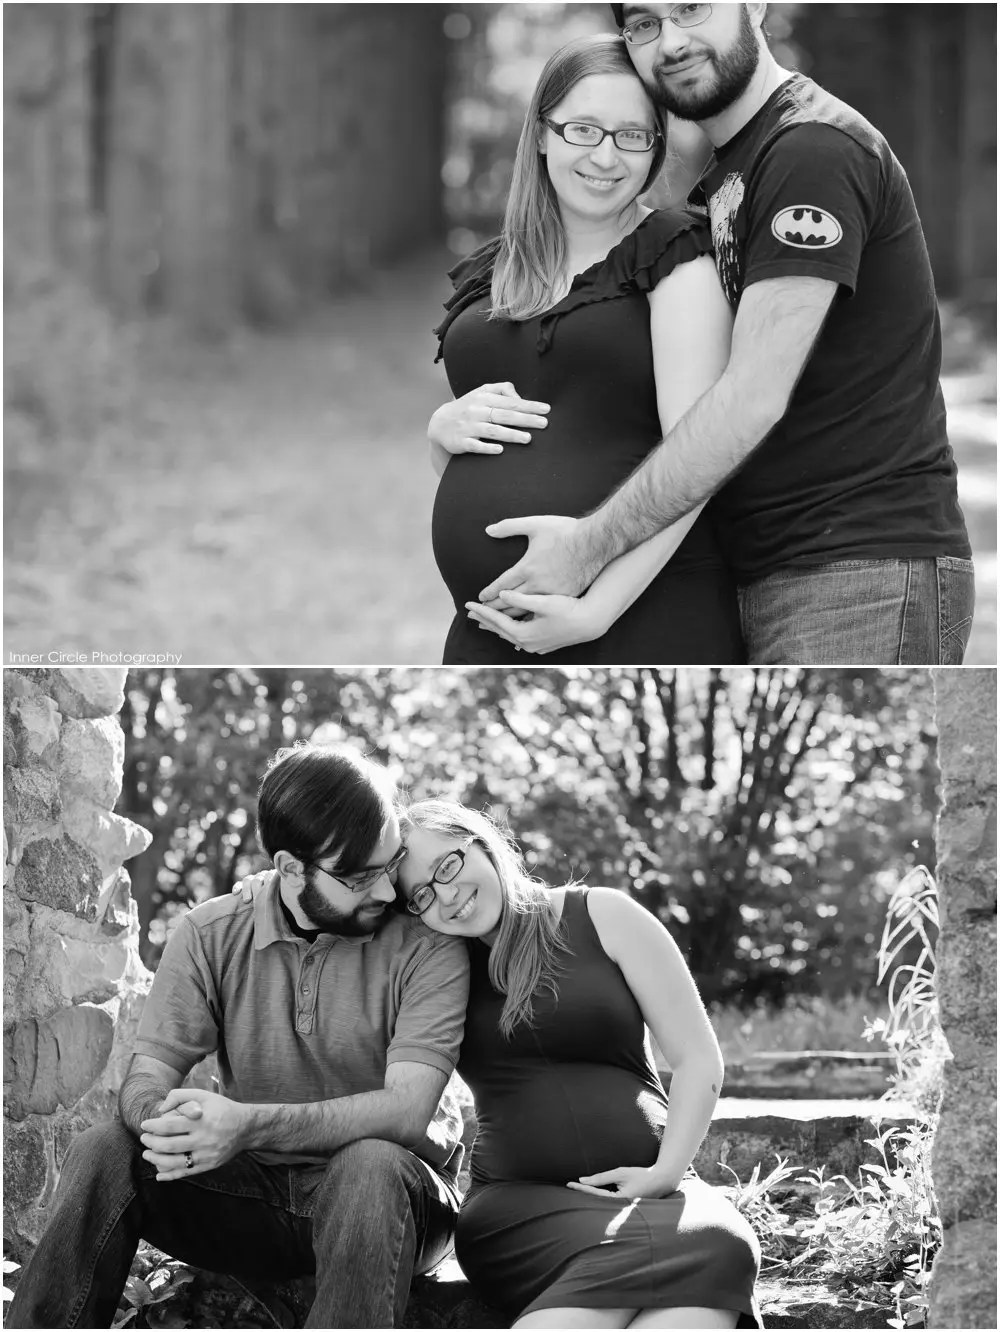 ashleyjoeMATERNITY035 Joe+Ashley+Bump